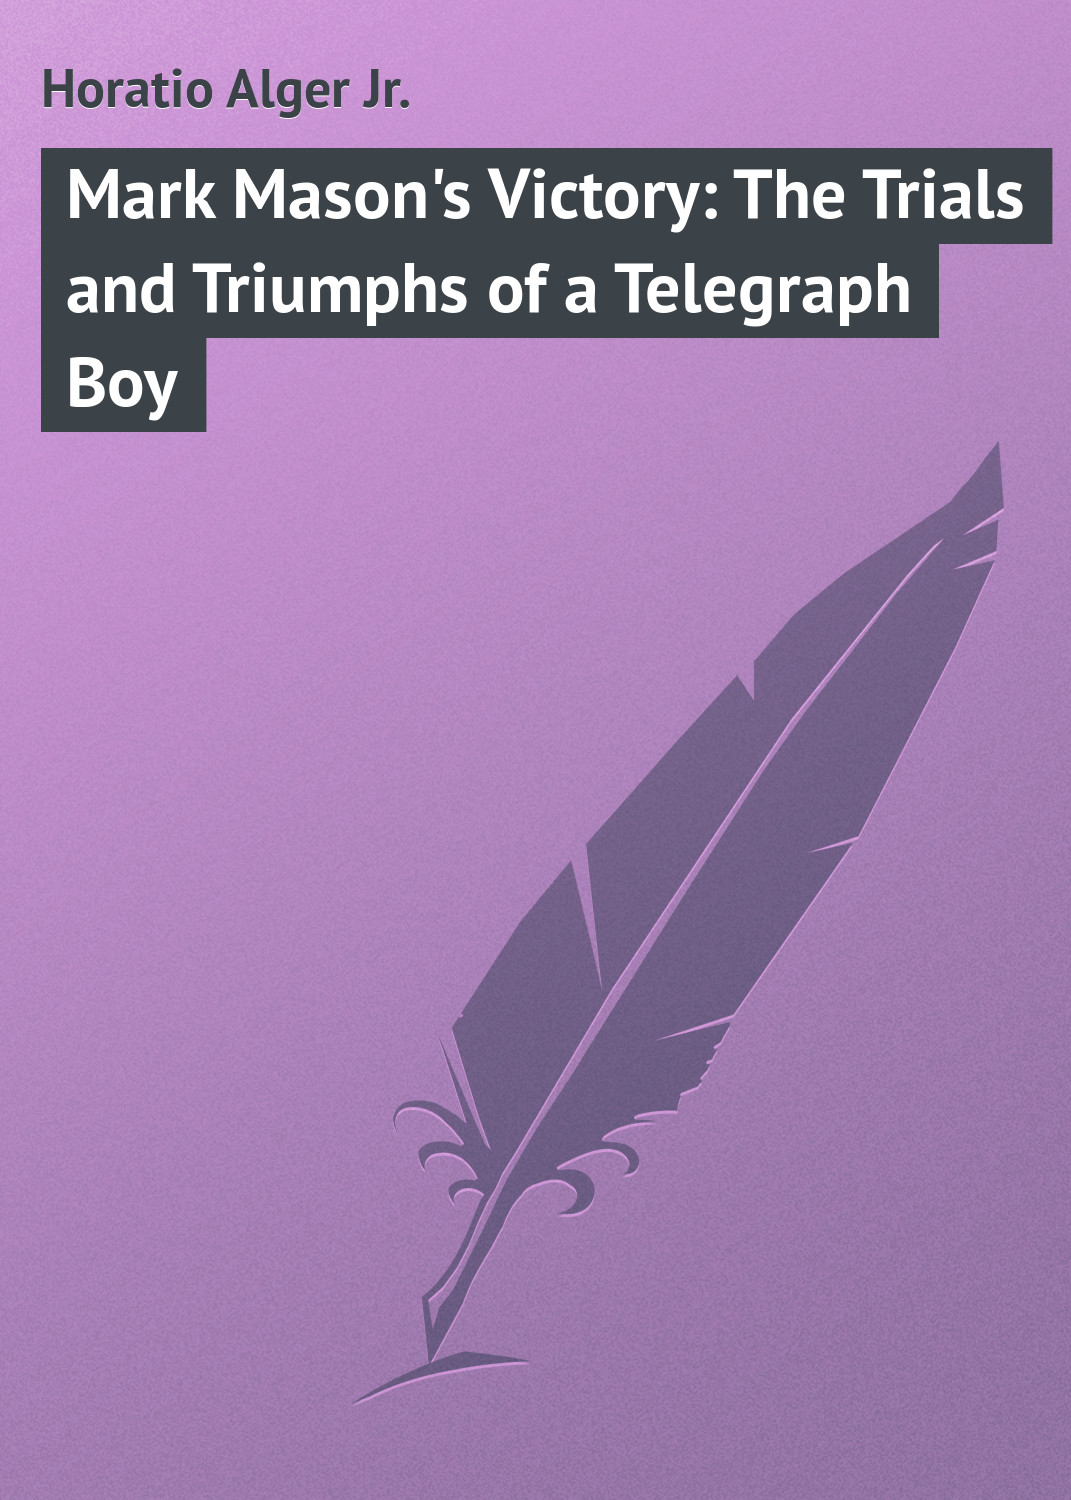 лучшая цена Alger Horatio Jr. Mark Mason's Victory: The Trials and Triumphs of a Telegraph Boy